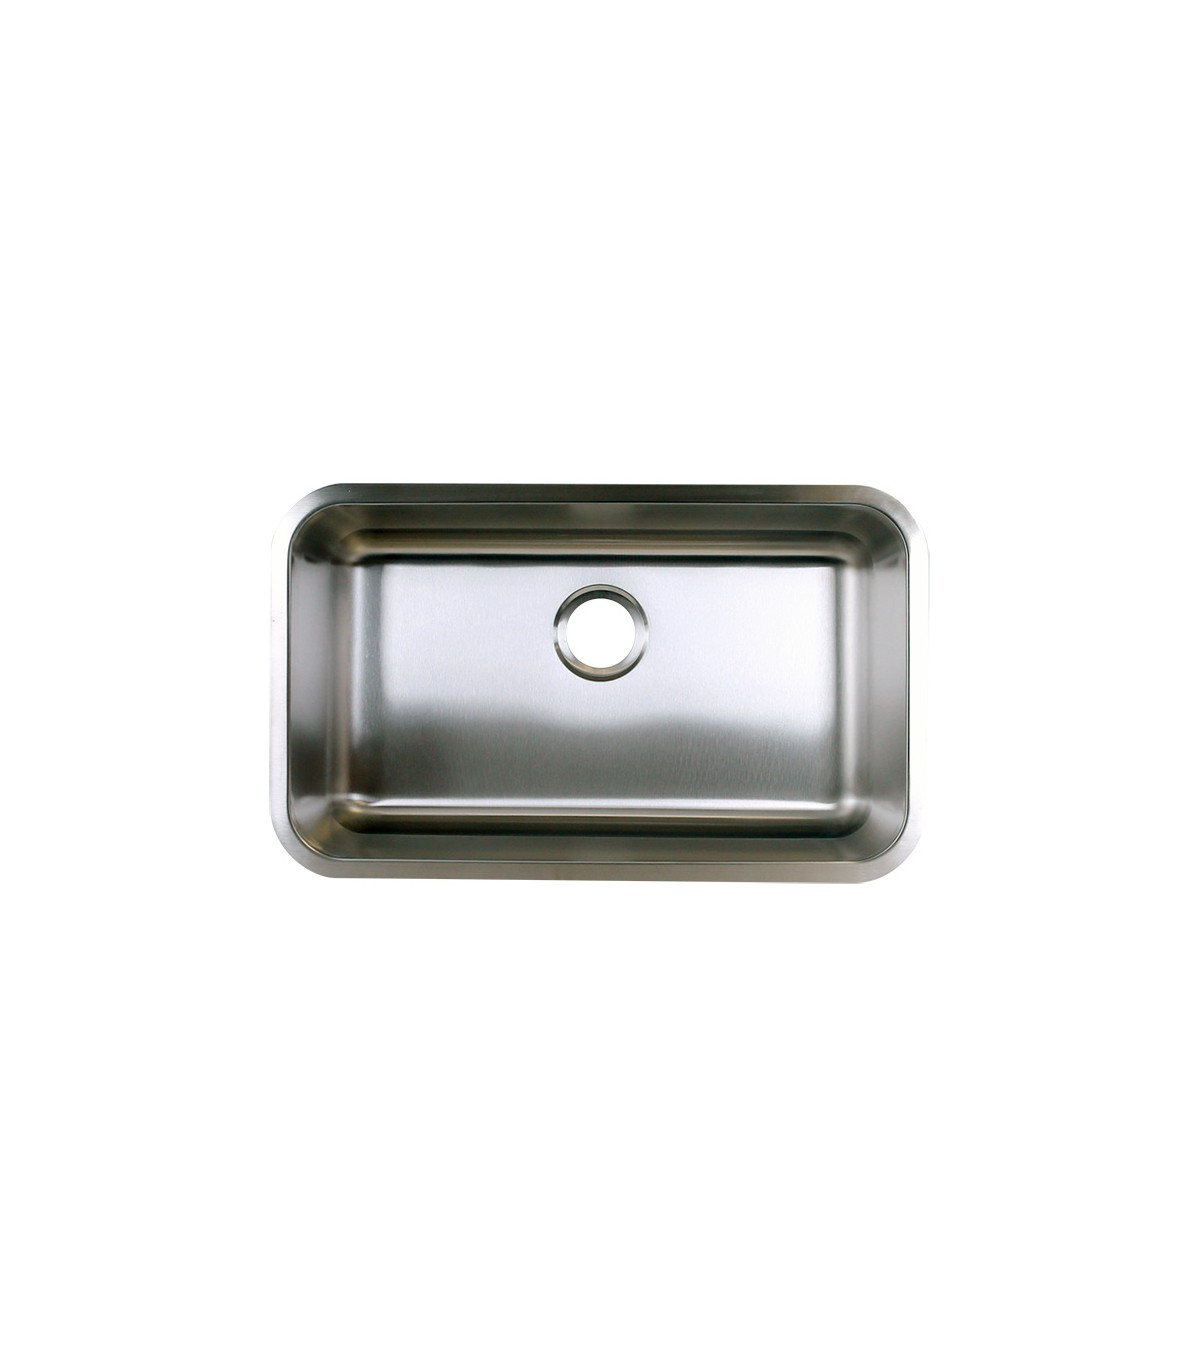 brush single depot steel drop sinks bay all in one kitchen sink glacier home the p stainless hole bowl